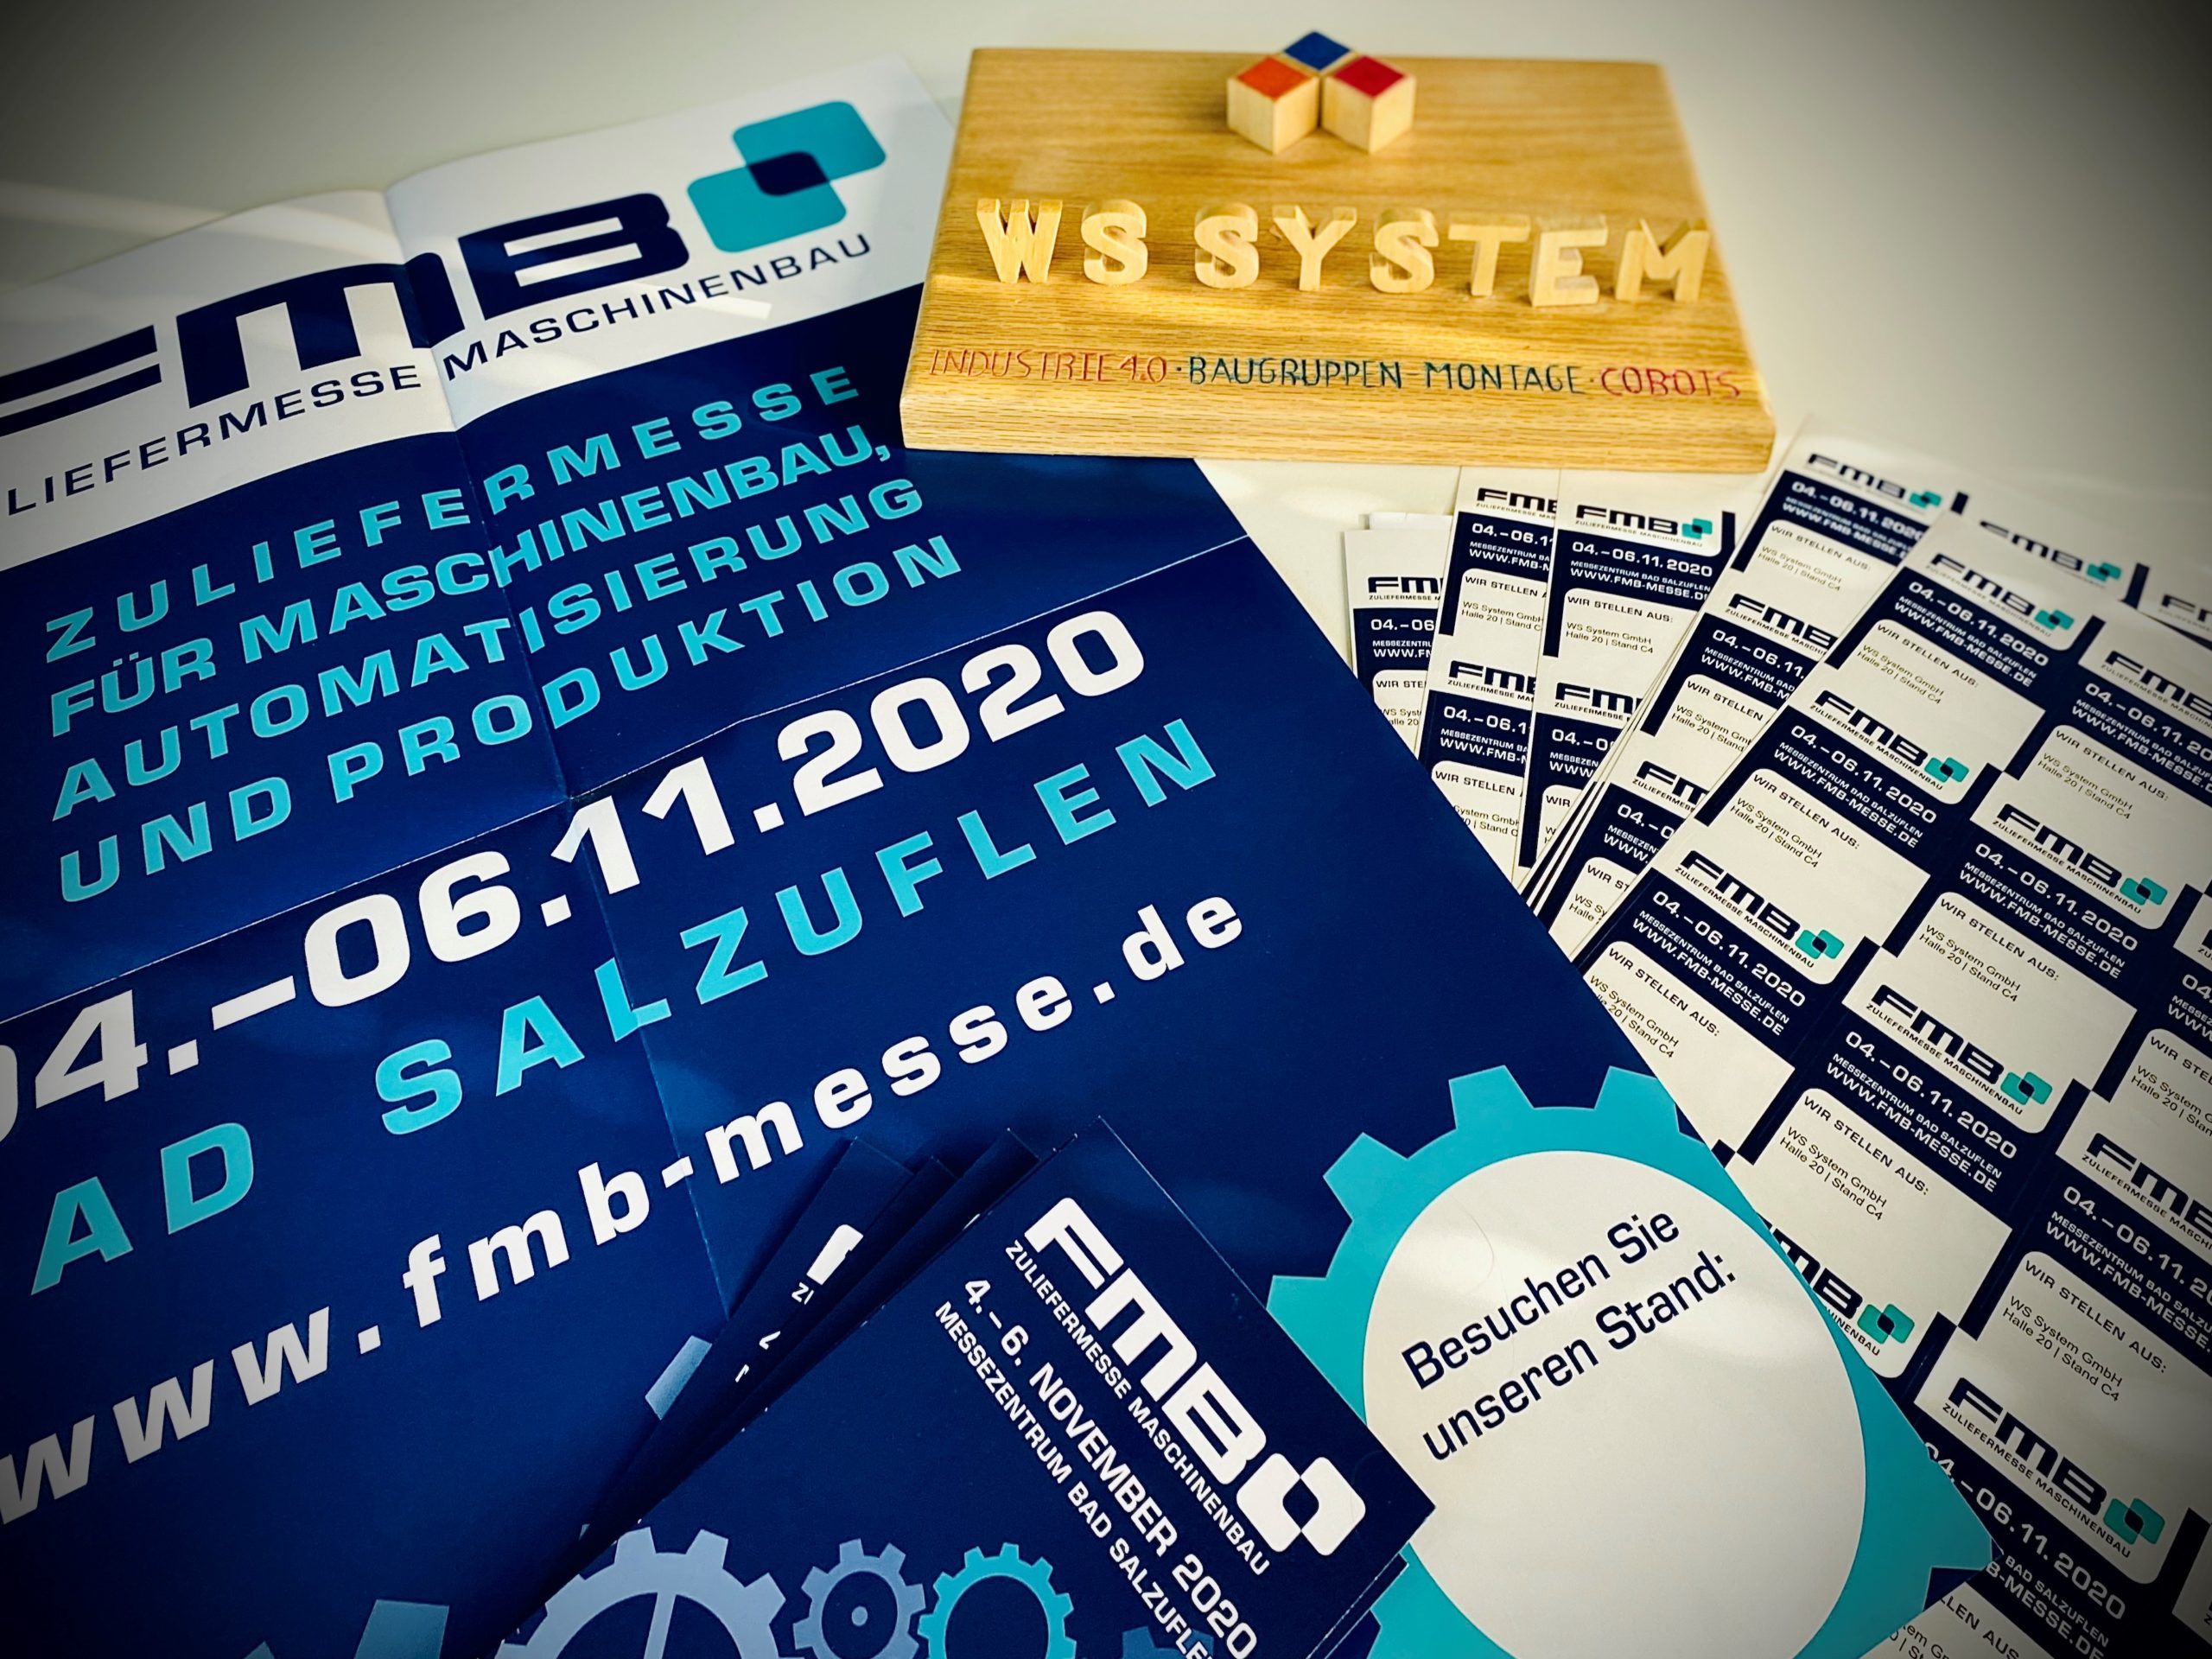 WS System FMB Messe